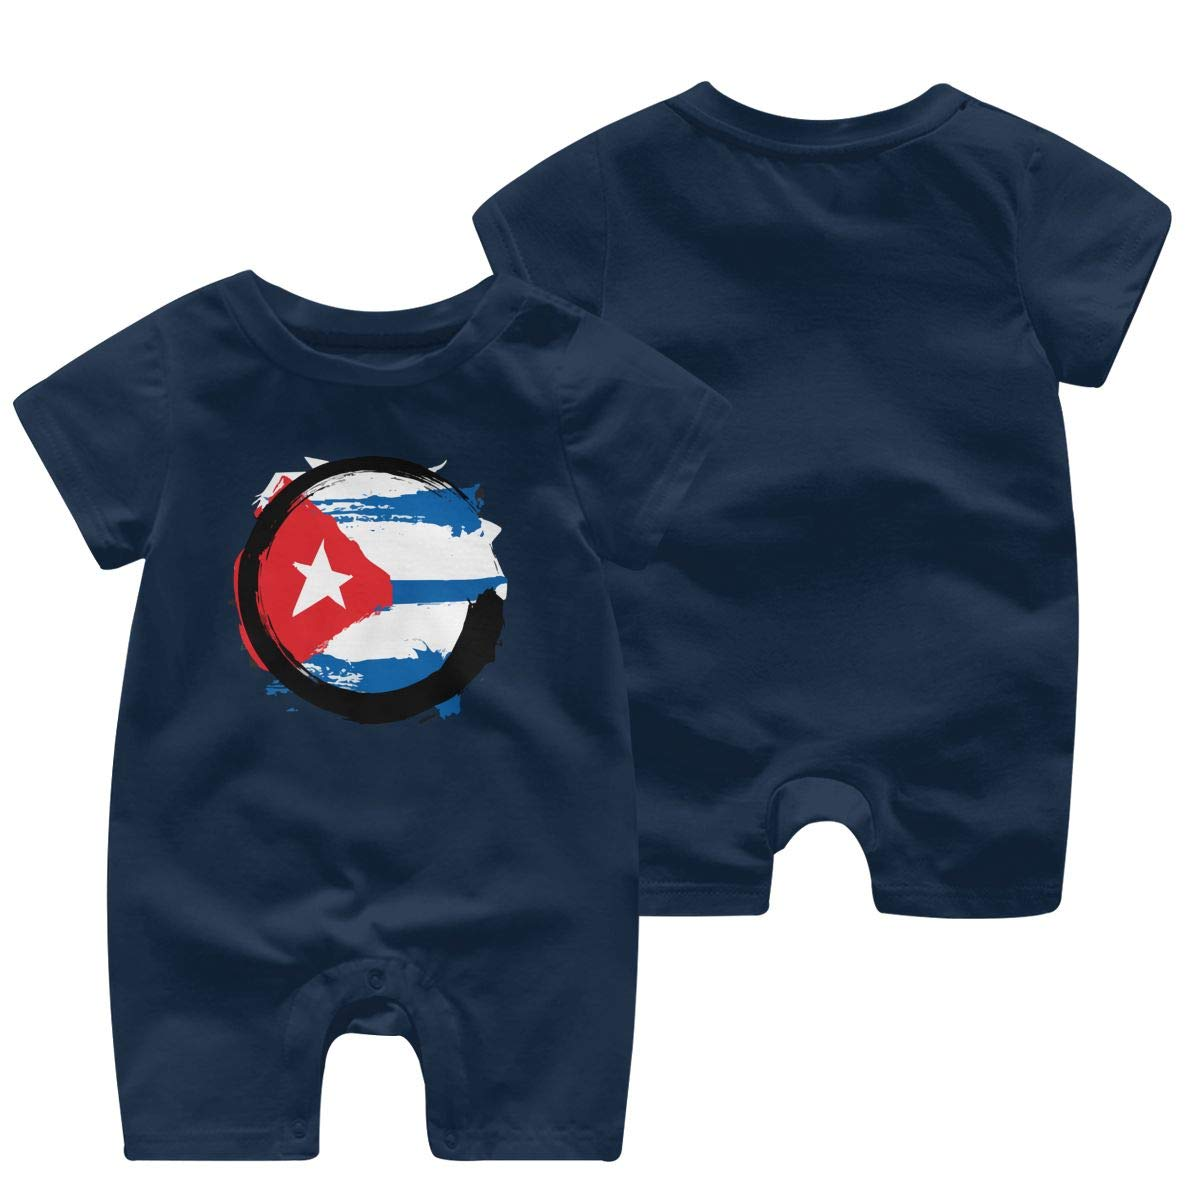 UGFGF/&3 Cuba Flag Zen Baby Boy Short Sleeve Romper Jumpsuit Baby Rompers 0-24 Months